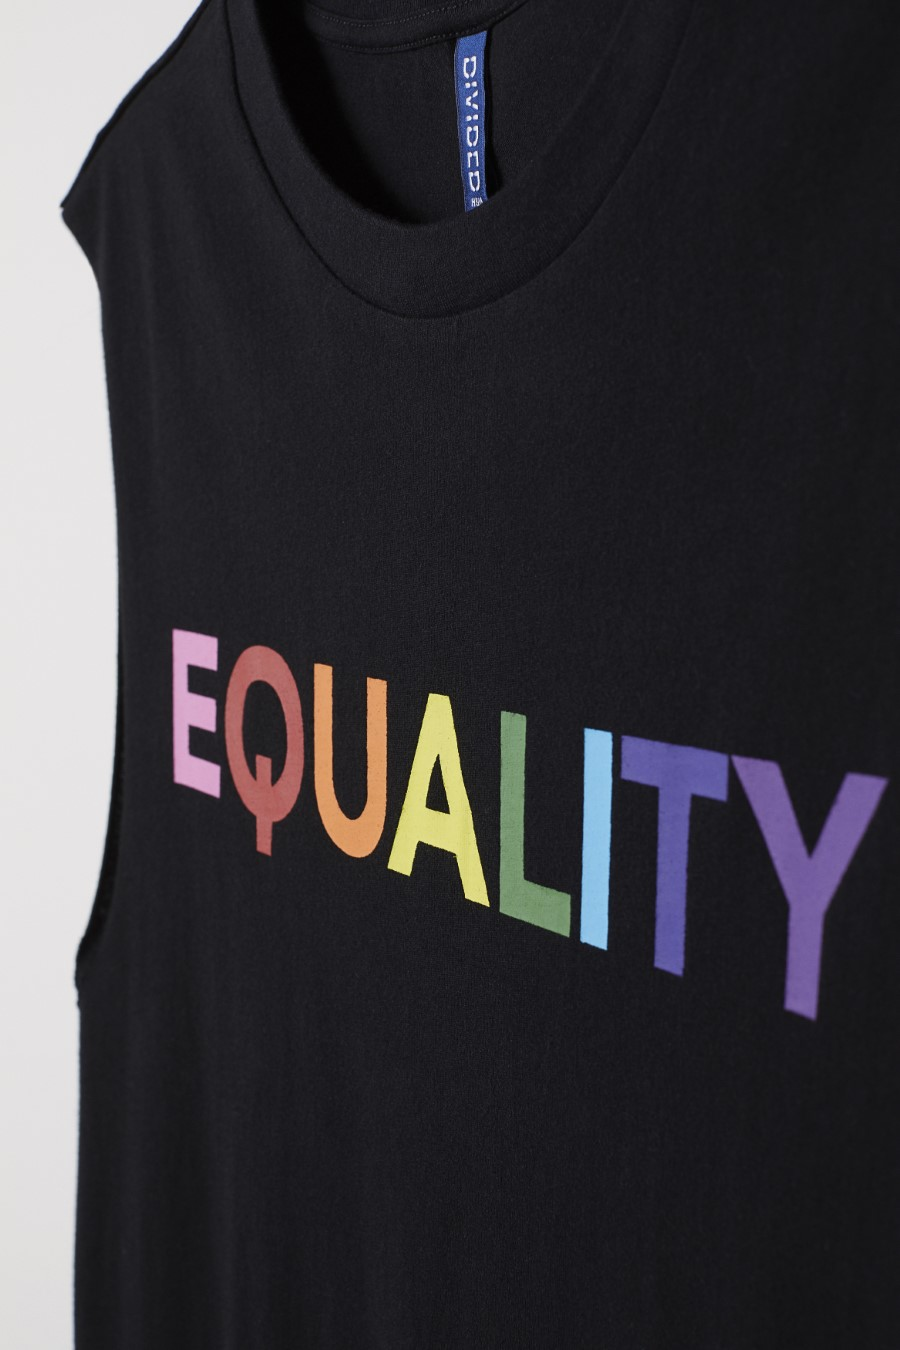 H&M Love For All Collection Gay